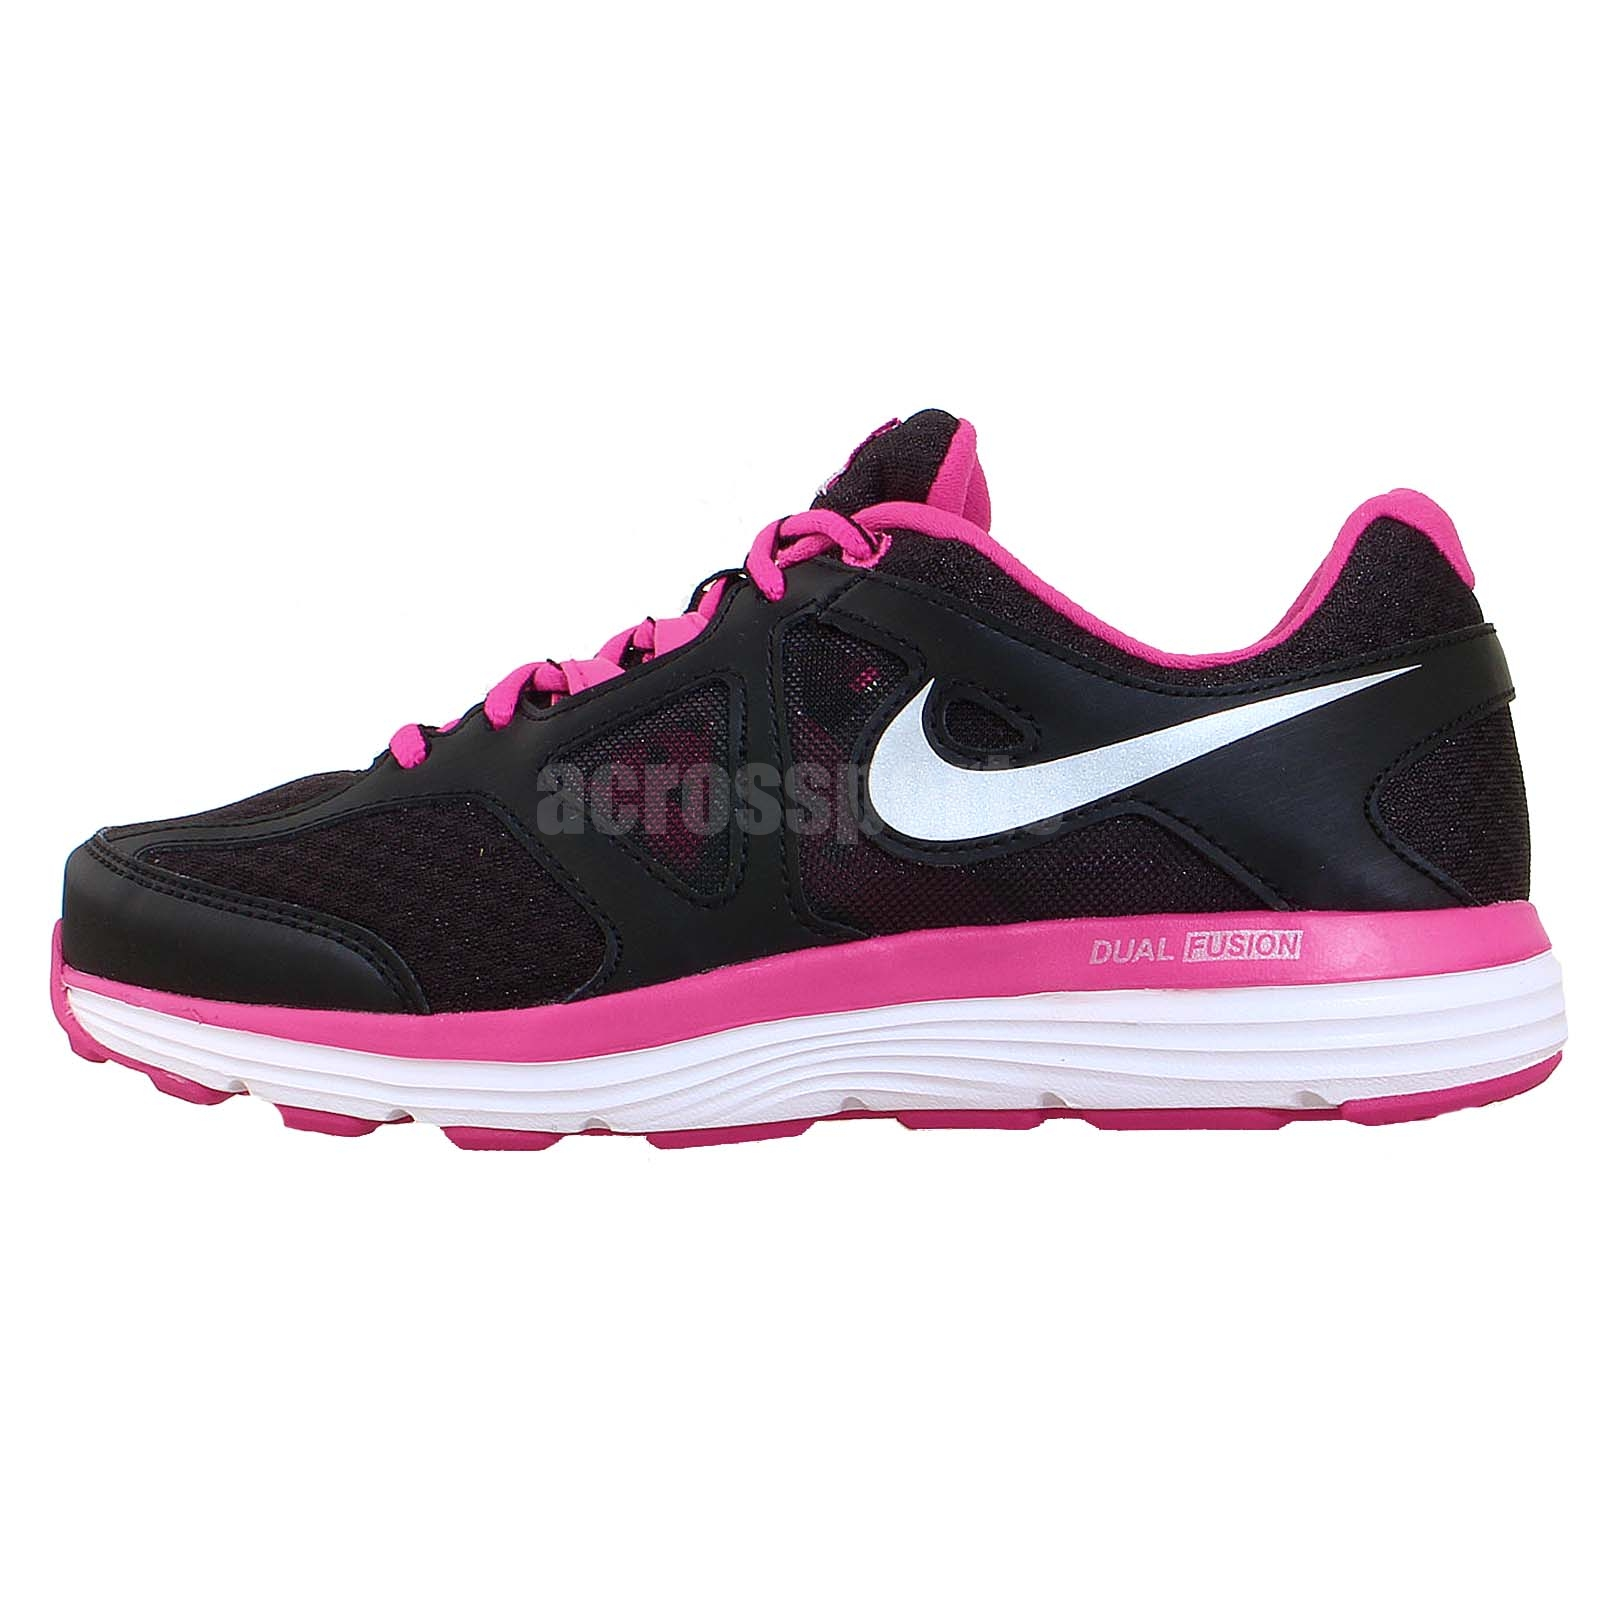 03d214443f3 Nike Dual Fusion St 2 Womens Royal Blue And Pink